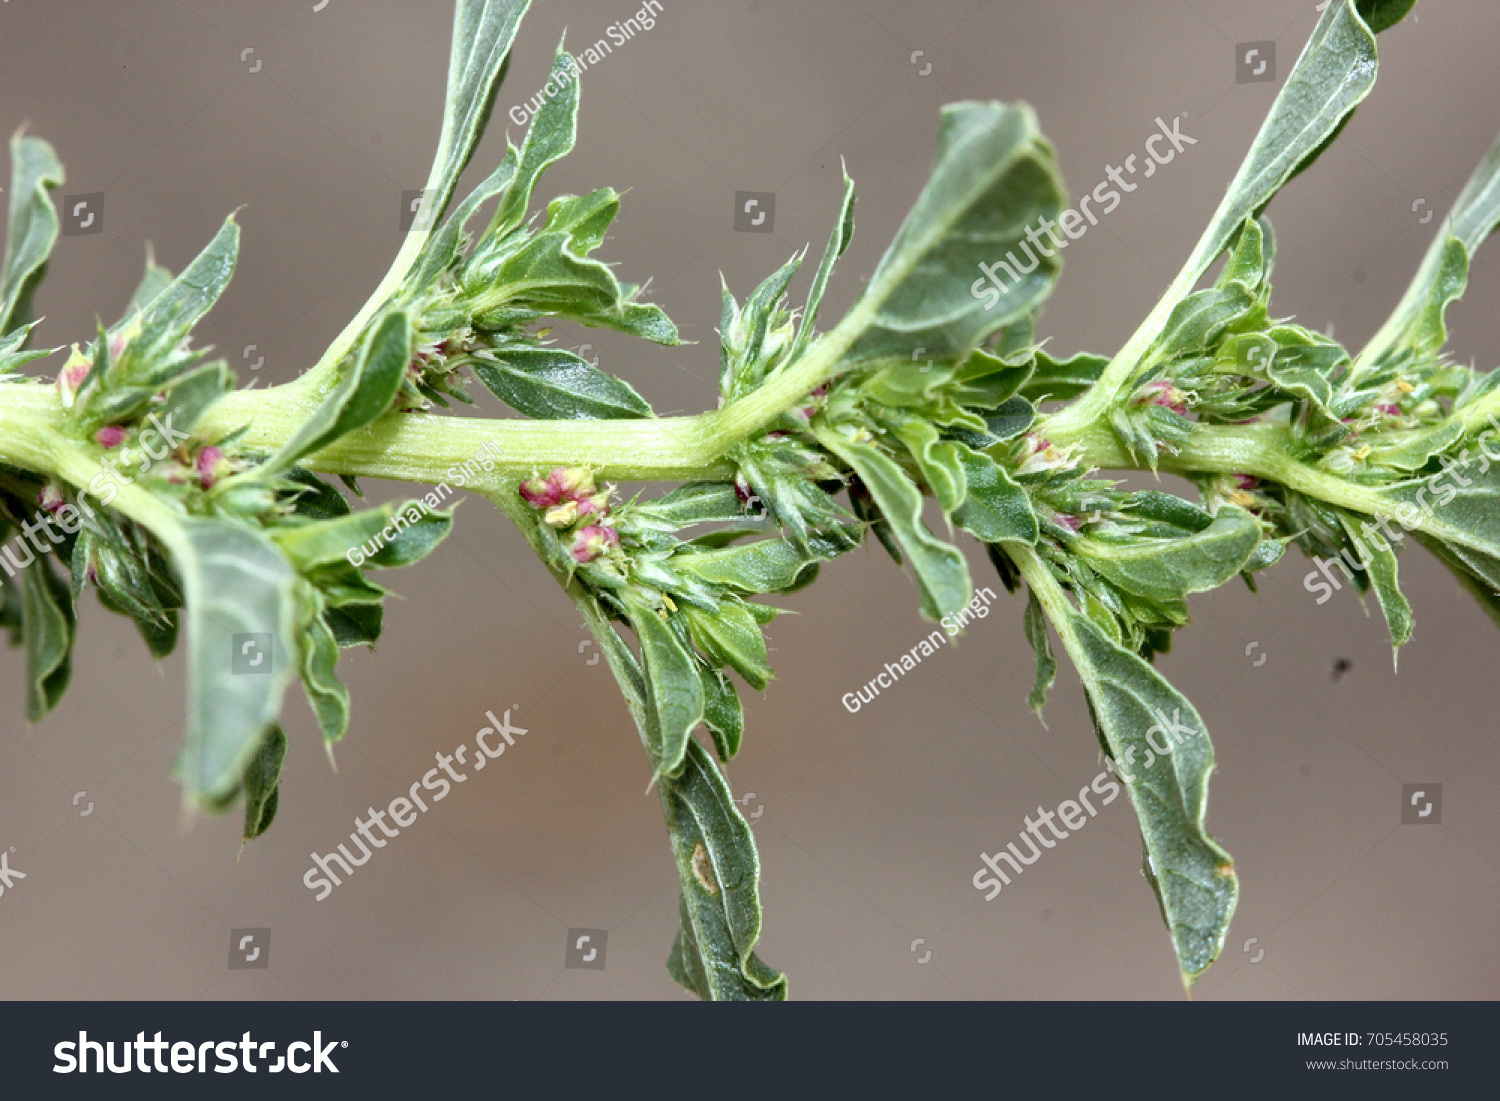 Amaranthus Albus White Pigweed Tumble Pigweed Stock Photo Royalty